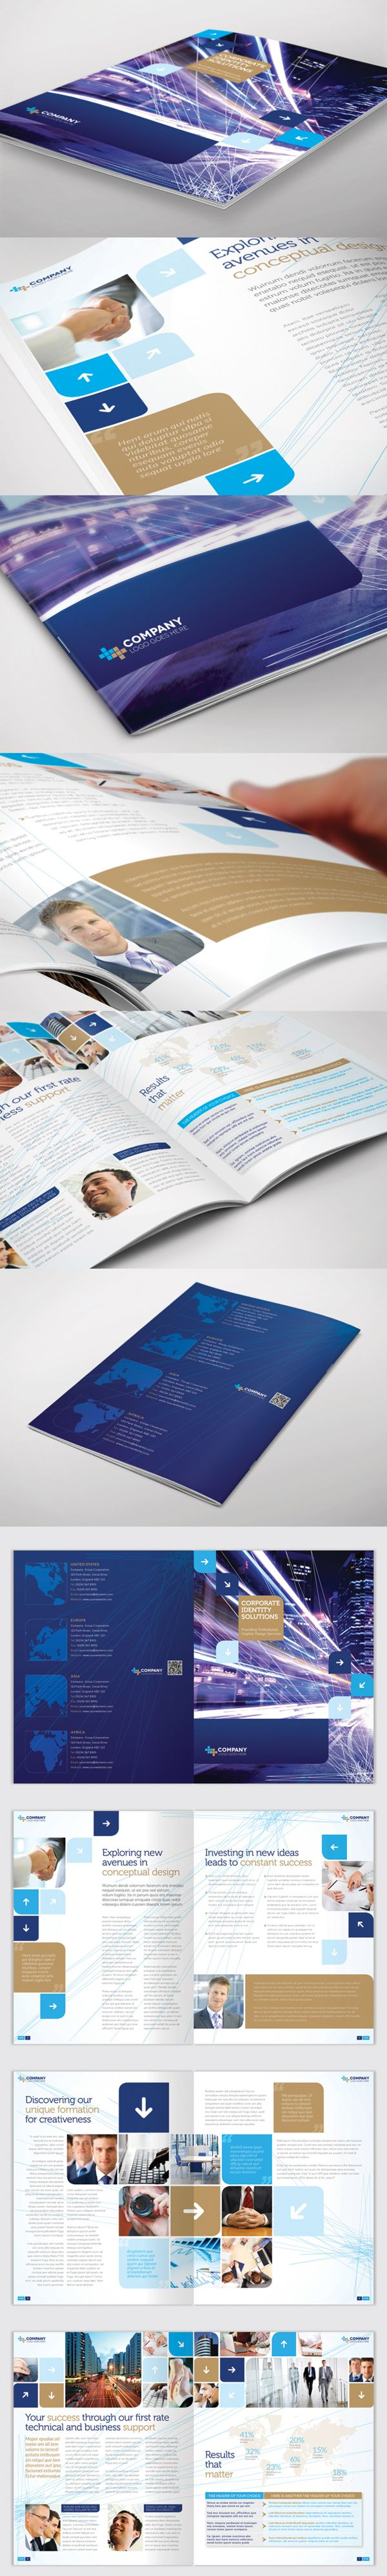 Brochure Template - InDesign 8 Page Layout 06 by BoxedCreative, via Behance